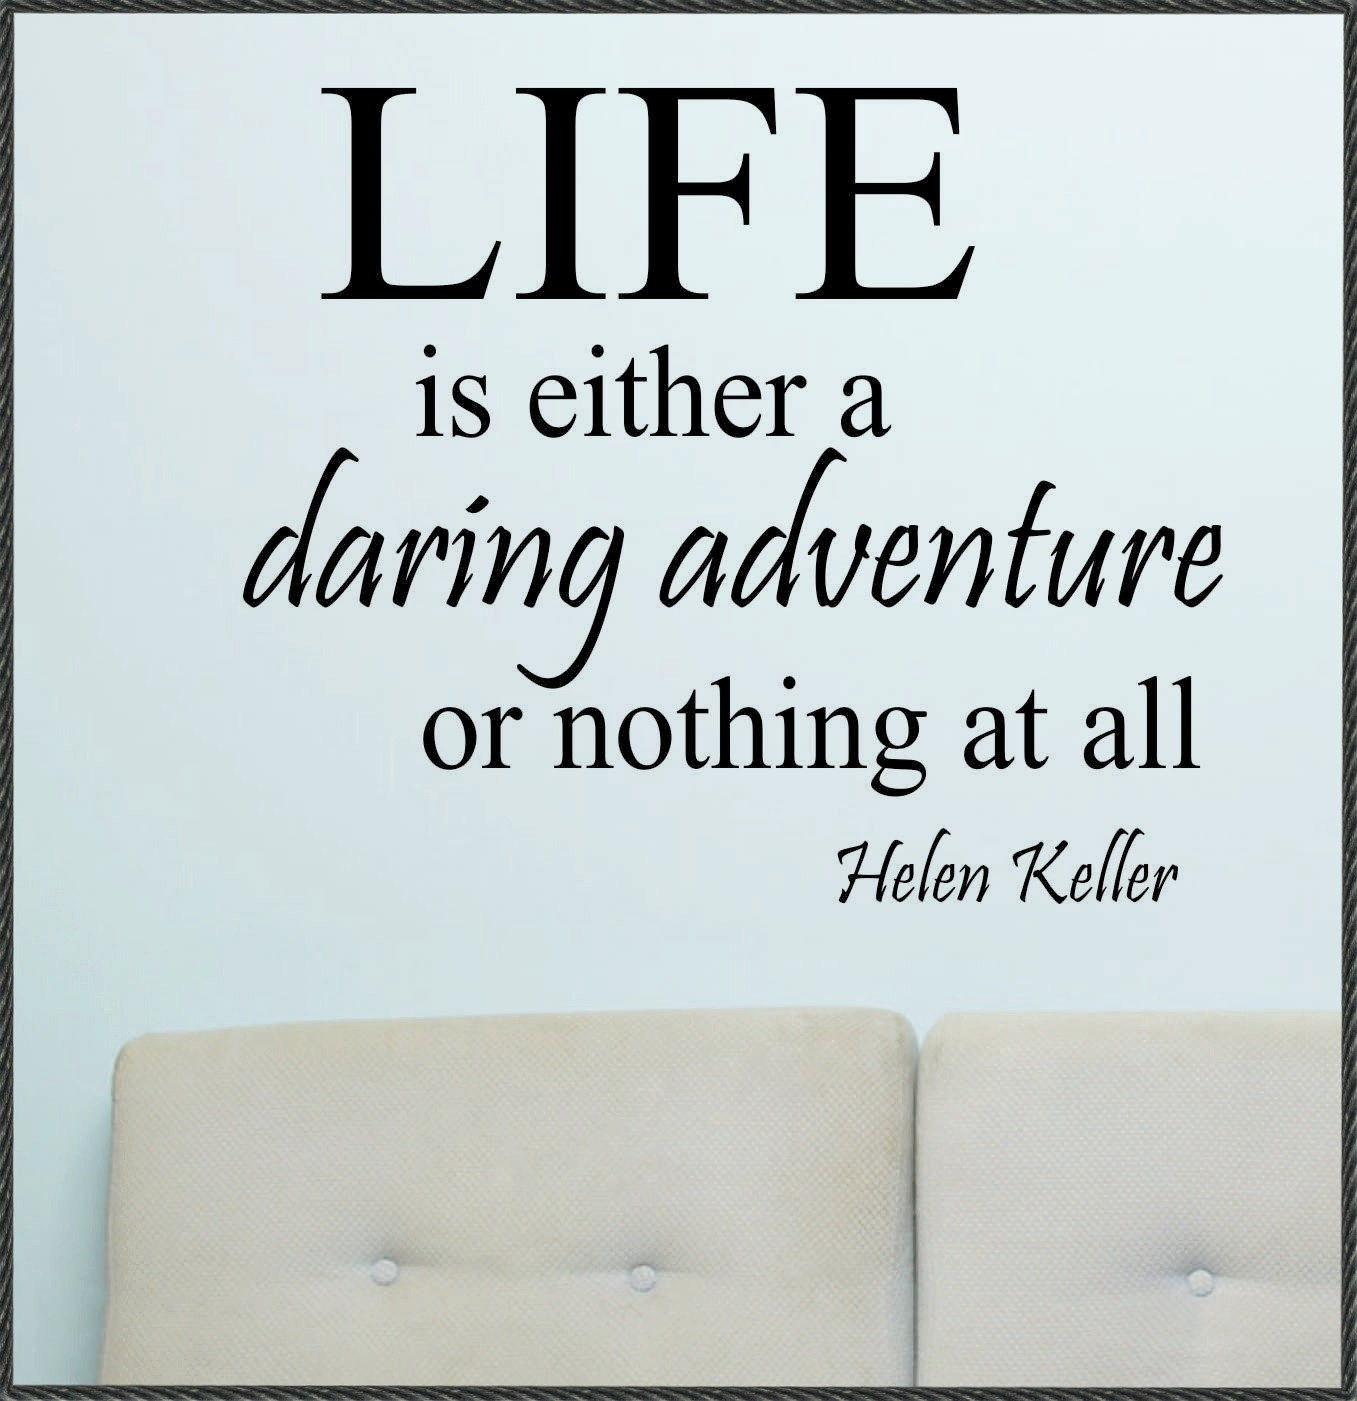 Quotes On Life 62 Best Daring Quotes And Sayings